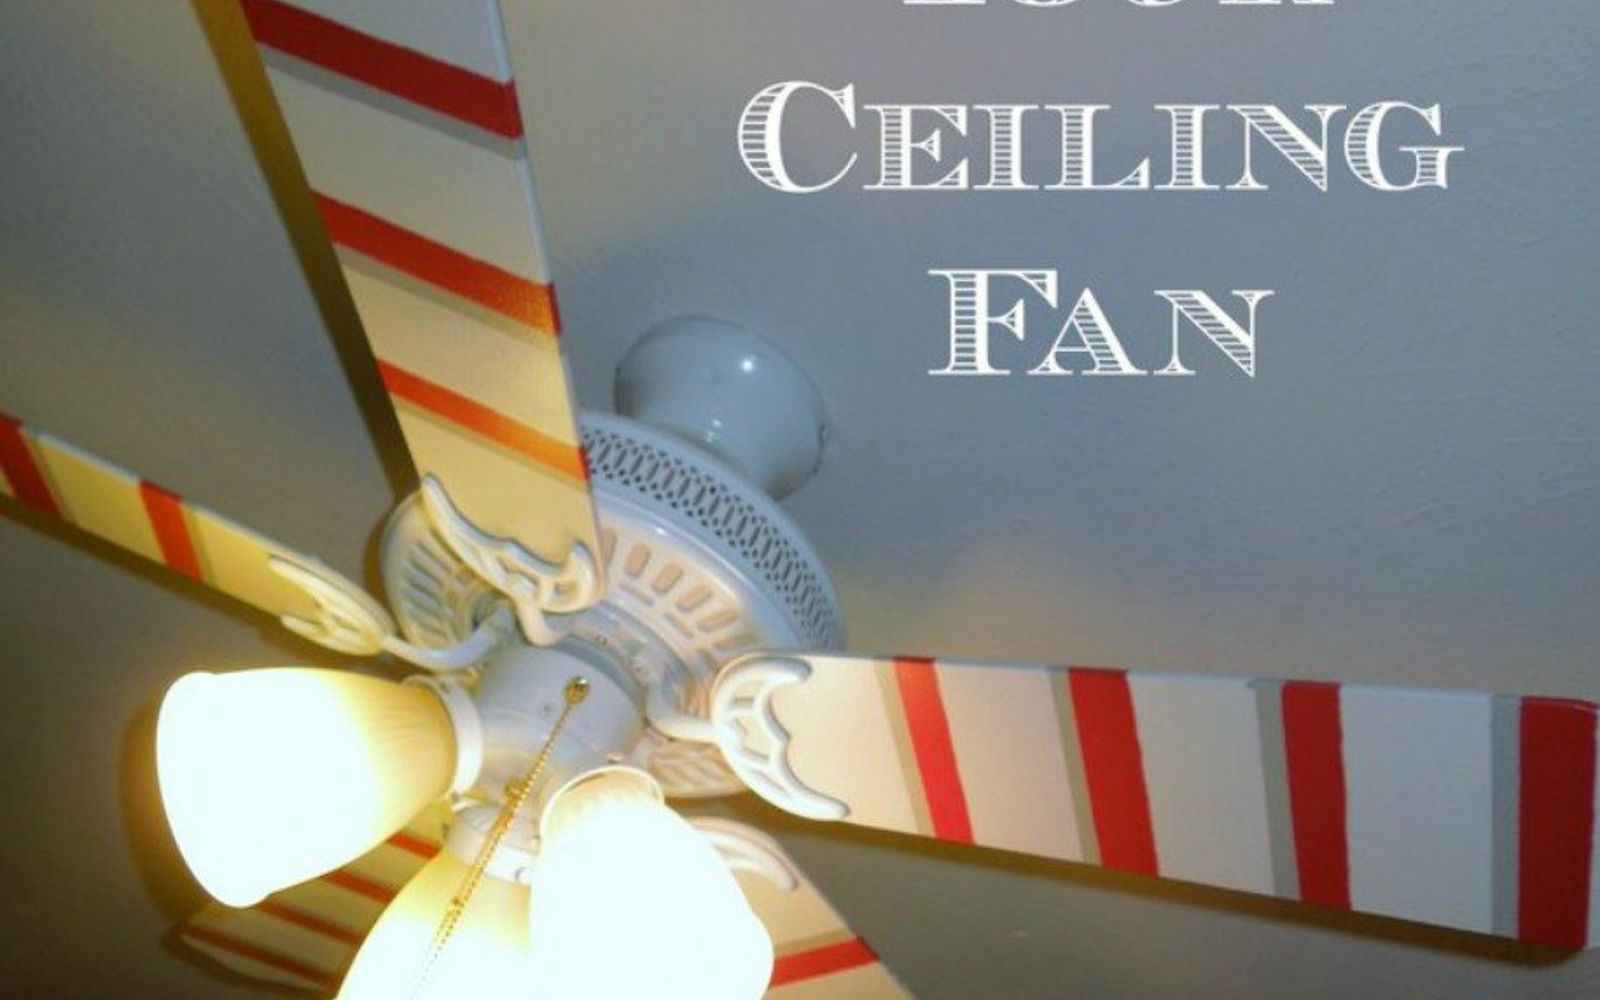 s 13 ways to upgrade your boring ceiling fan on a budget, appliances, wall decor, Paint bold stripes onto each blade